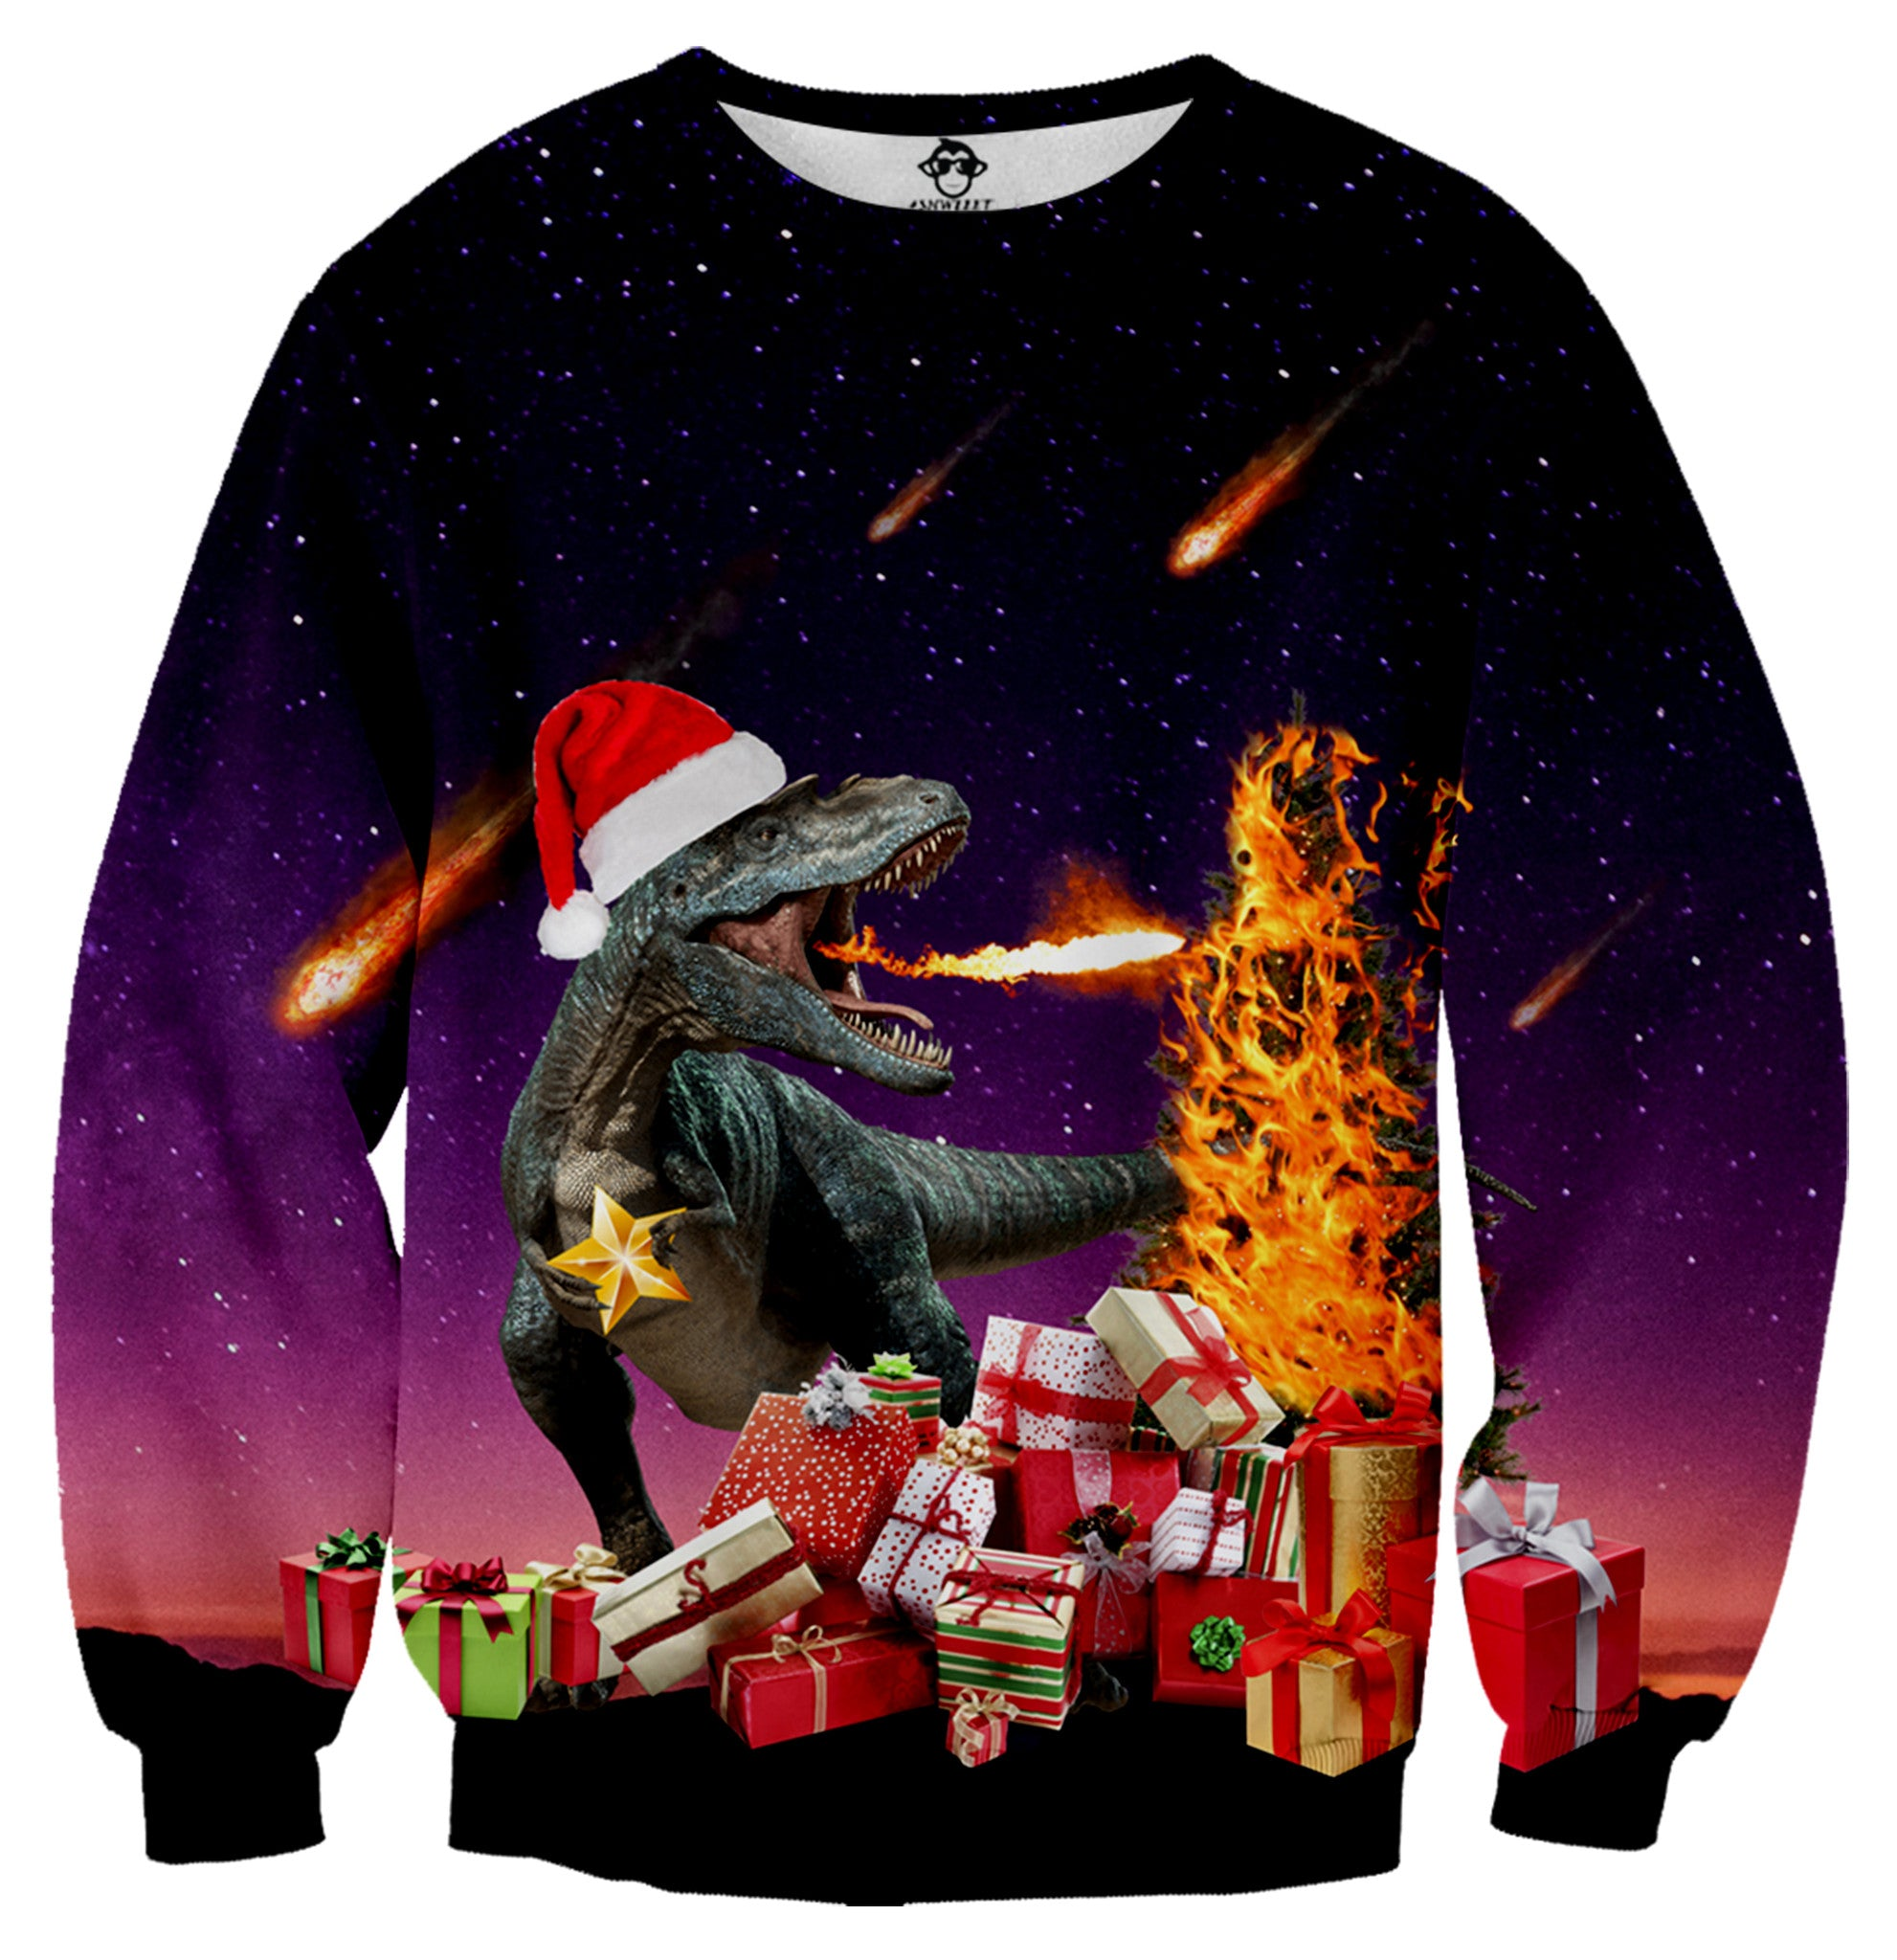 T-Rex Christmas Sweater - Shweeet